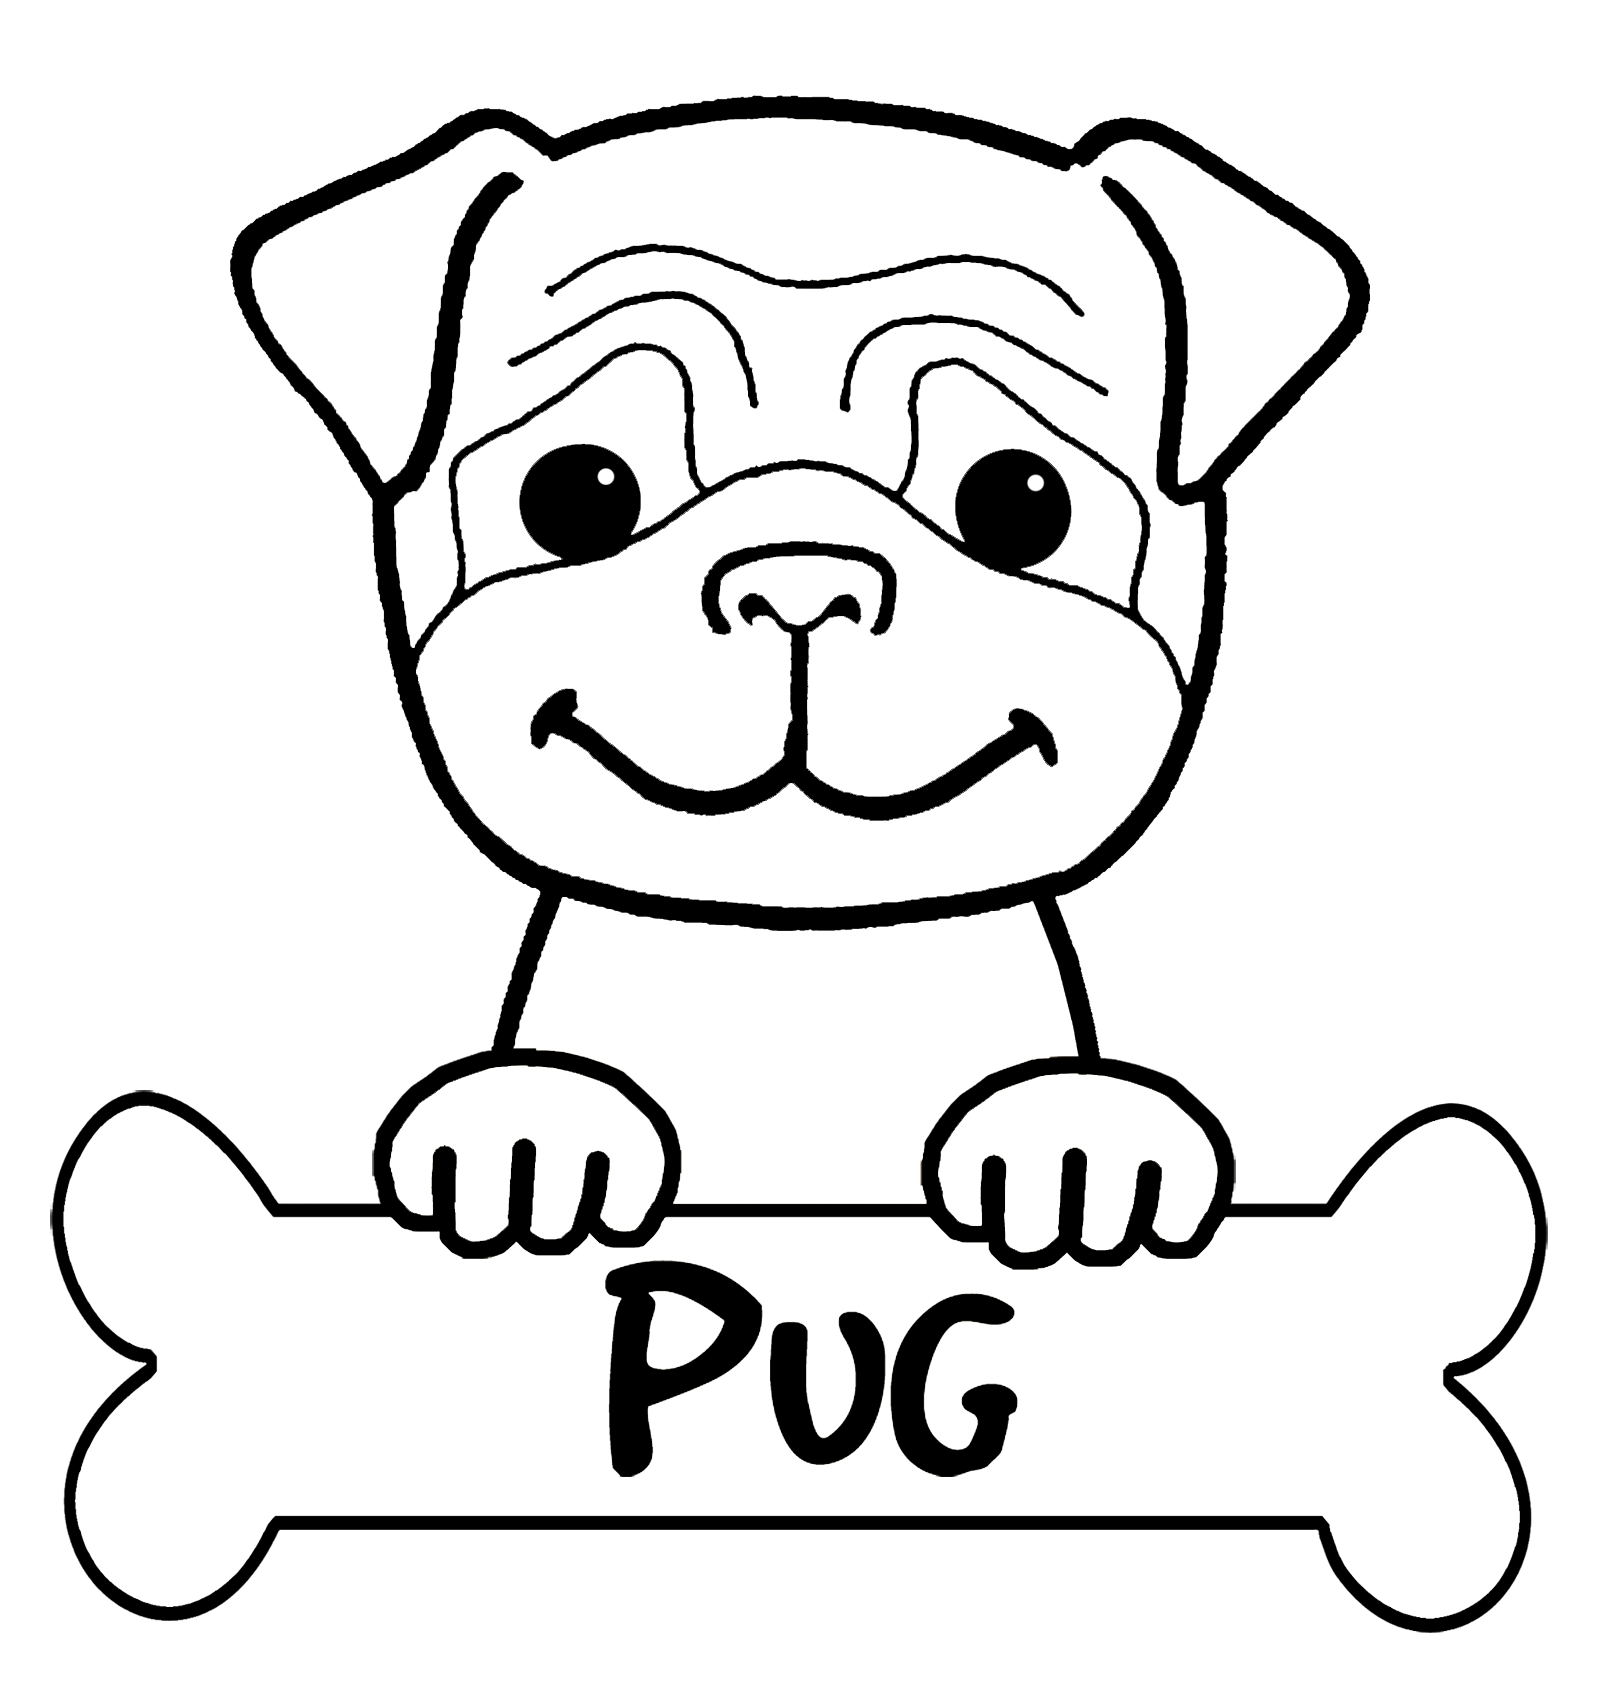 coloring pics of dogs coloring pics of dogs pics dogs coloring of